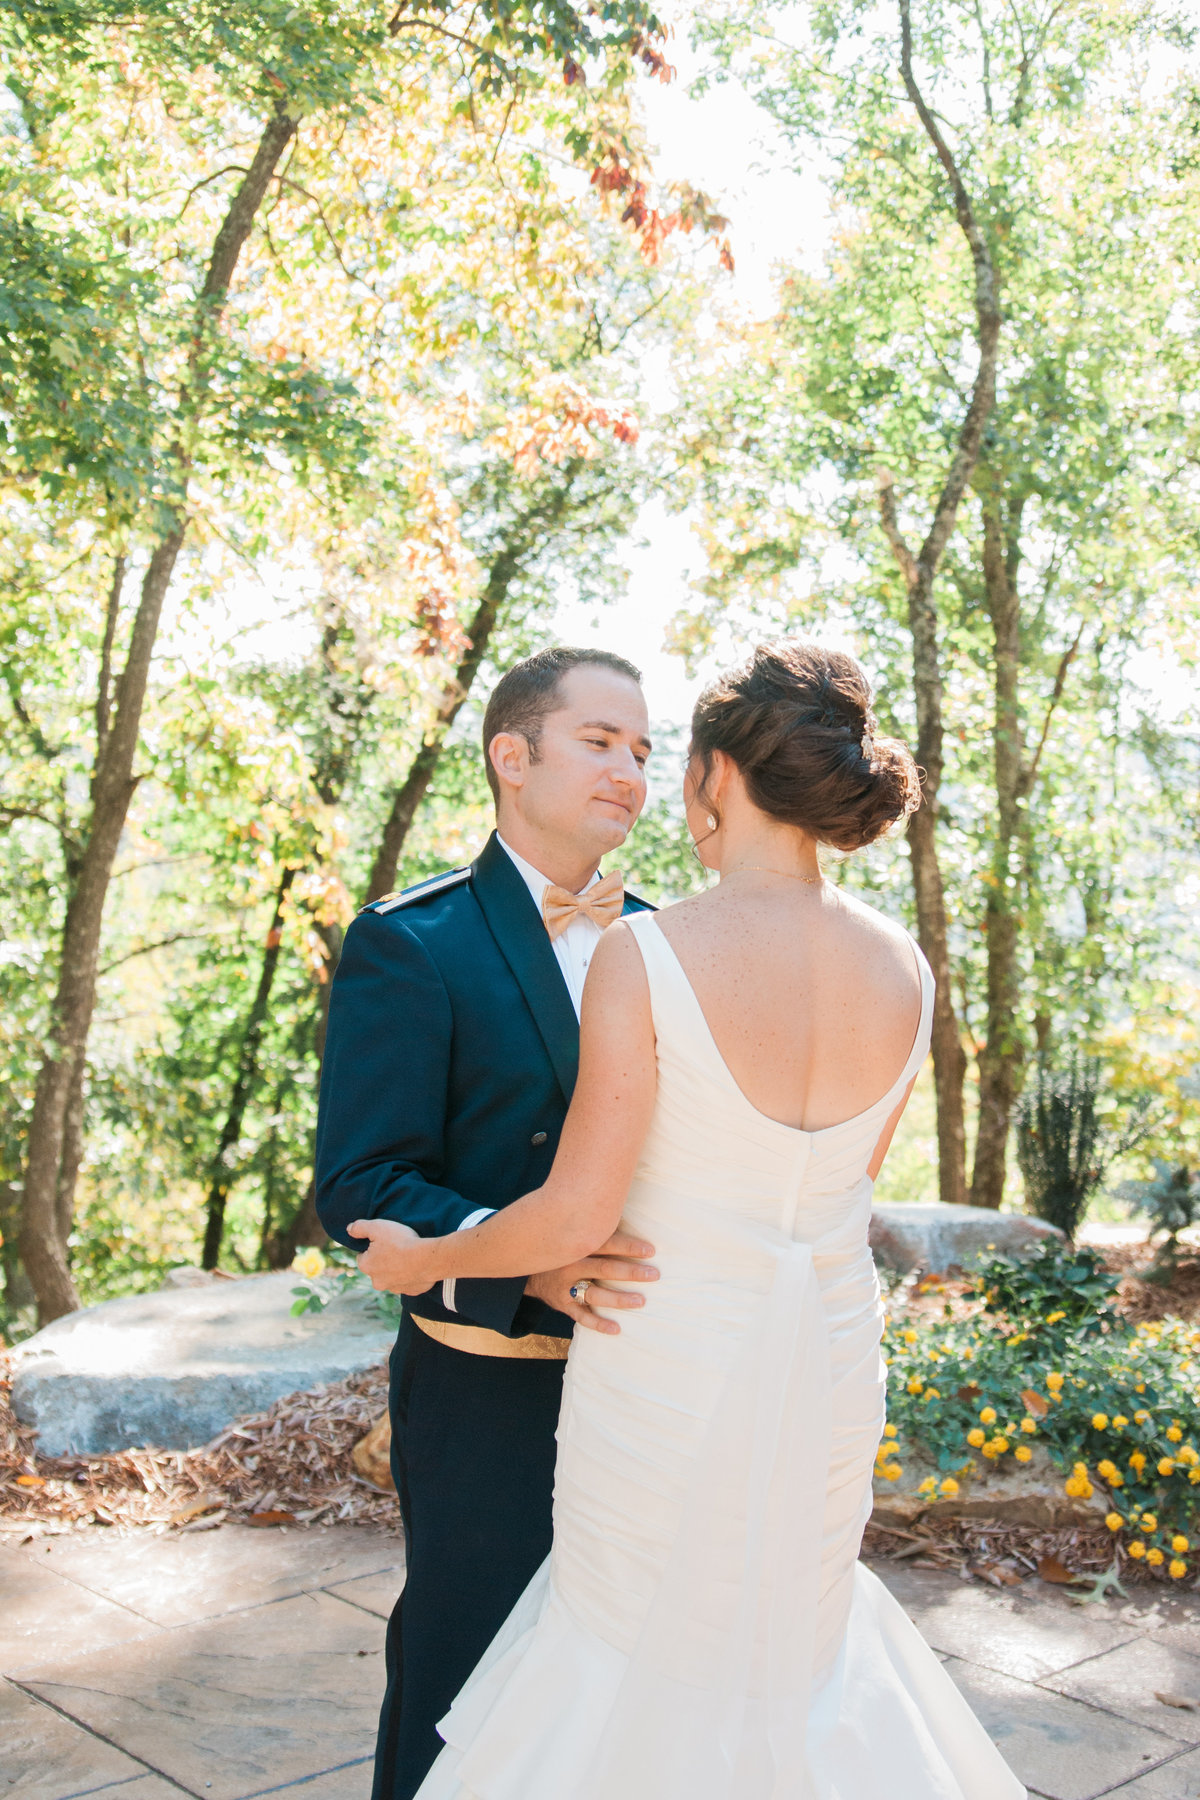 Rustic outdoor wedding photographed at Leatherwood Mountain by Boone Photographer Wayfaring Wanderer. Leatherwood is a gorgeous venue in Ferguson, NC.